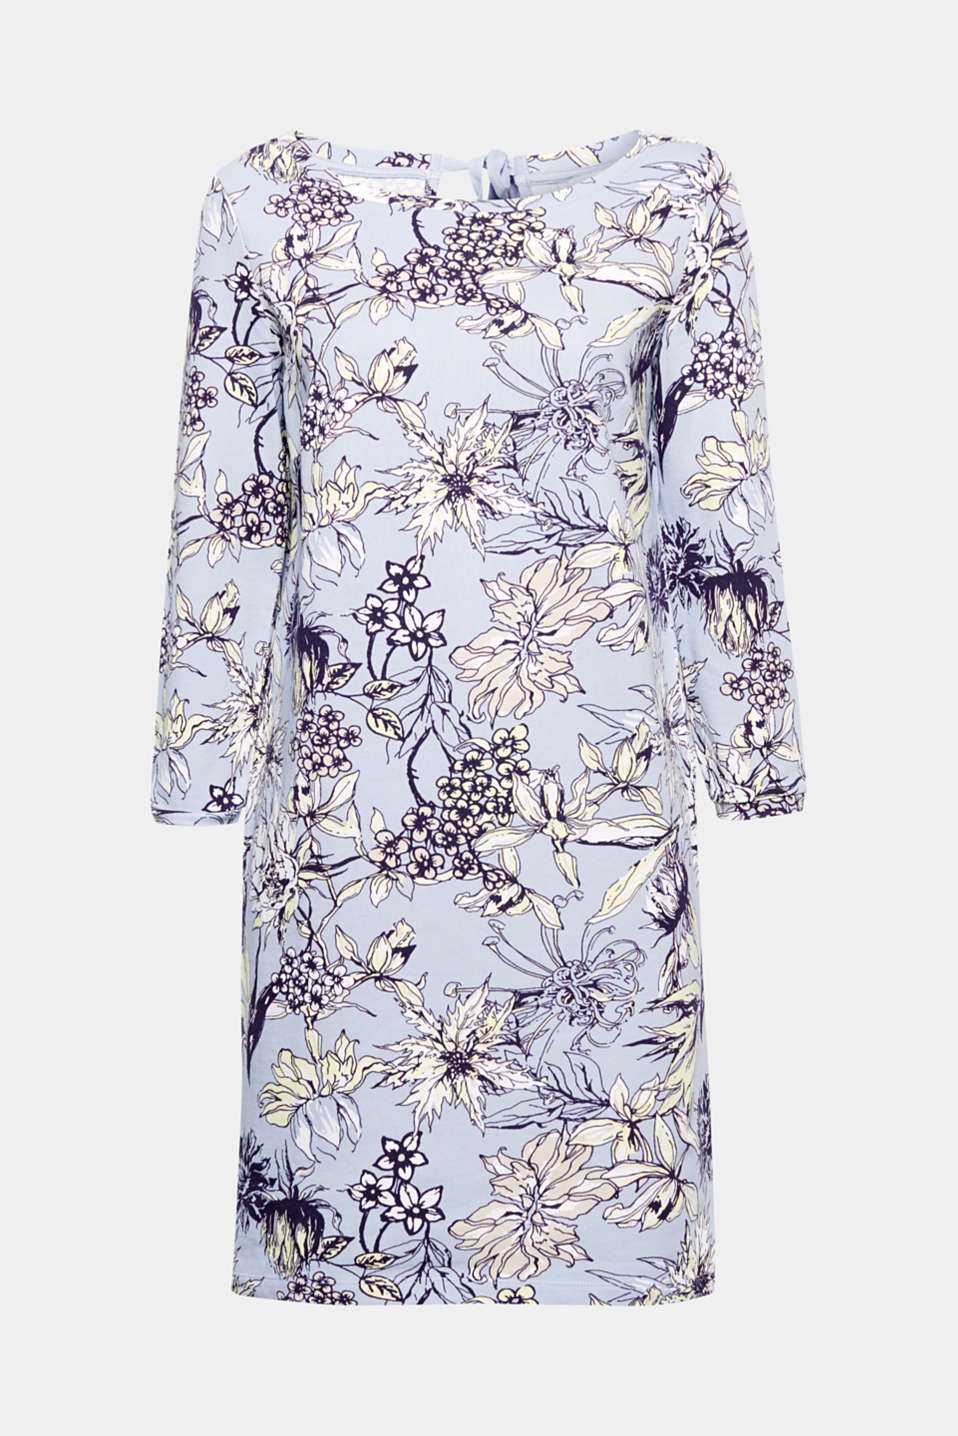 Welcome spring into your wardrobe with this floral printed dress in cotton sweatshirt fabric.